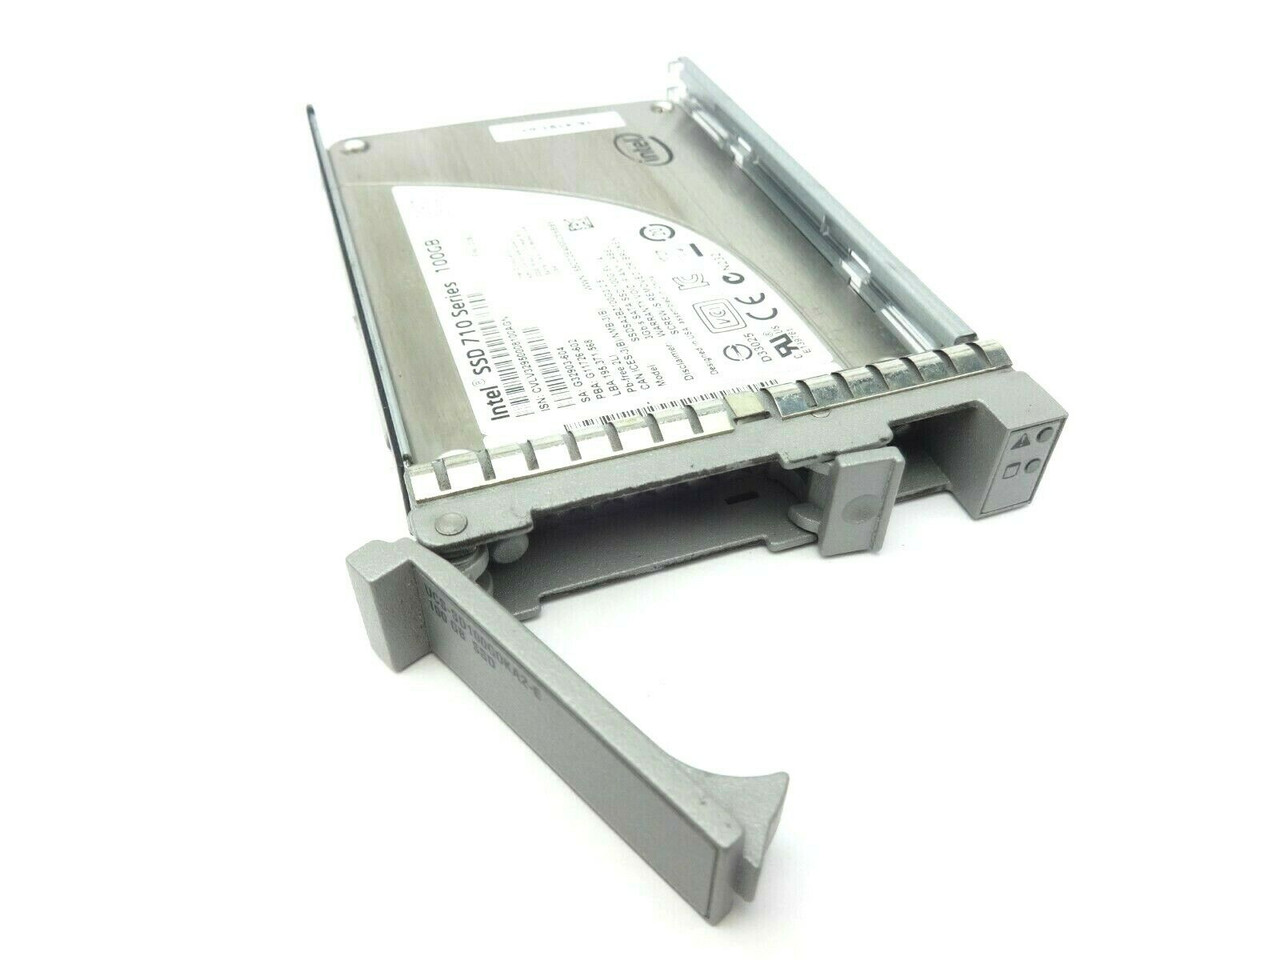 Cisco UCS-SD100G0KA2-E UCS C240 100GB 2.5 Enterprise SSD SATA Hard Drive